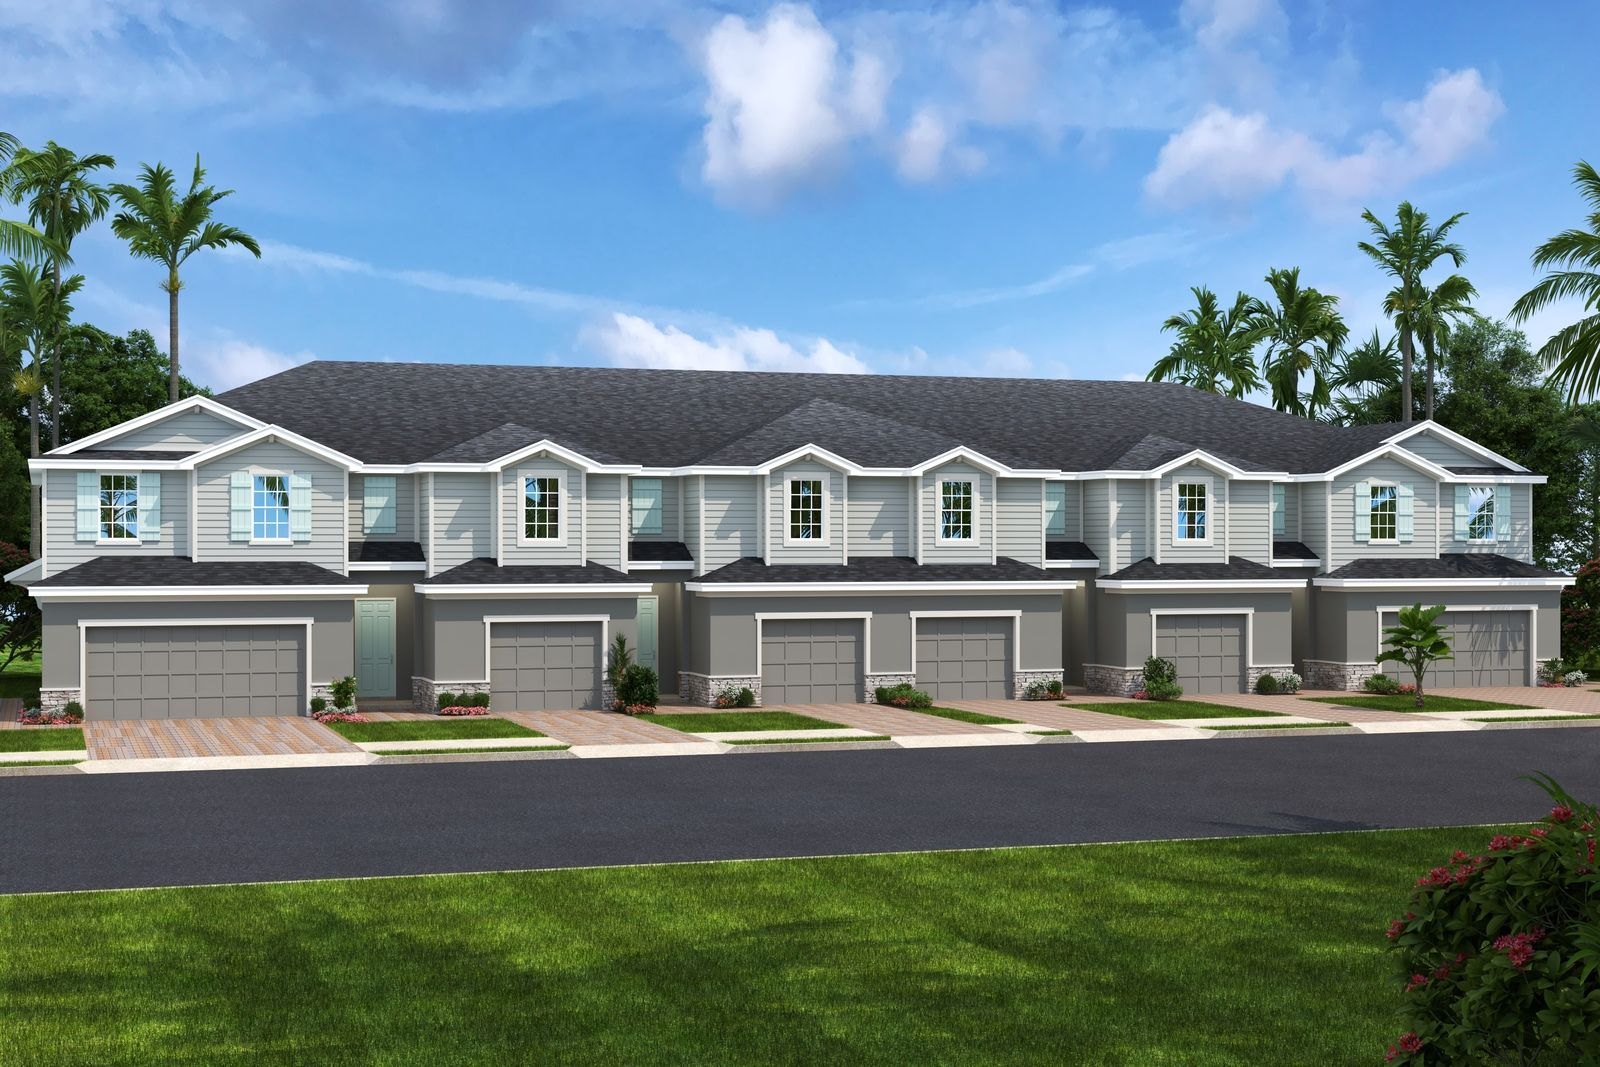 Welcome home to Holden Ridge in Minneola, FL!:Schedule a tour to check out Minneola's ONLY new gated Townhome community with low-maintenance living in a stunning, natural setting near turnpike & top schools. Fromthe low $300s.